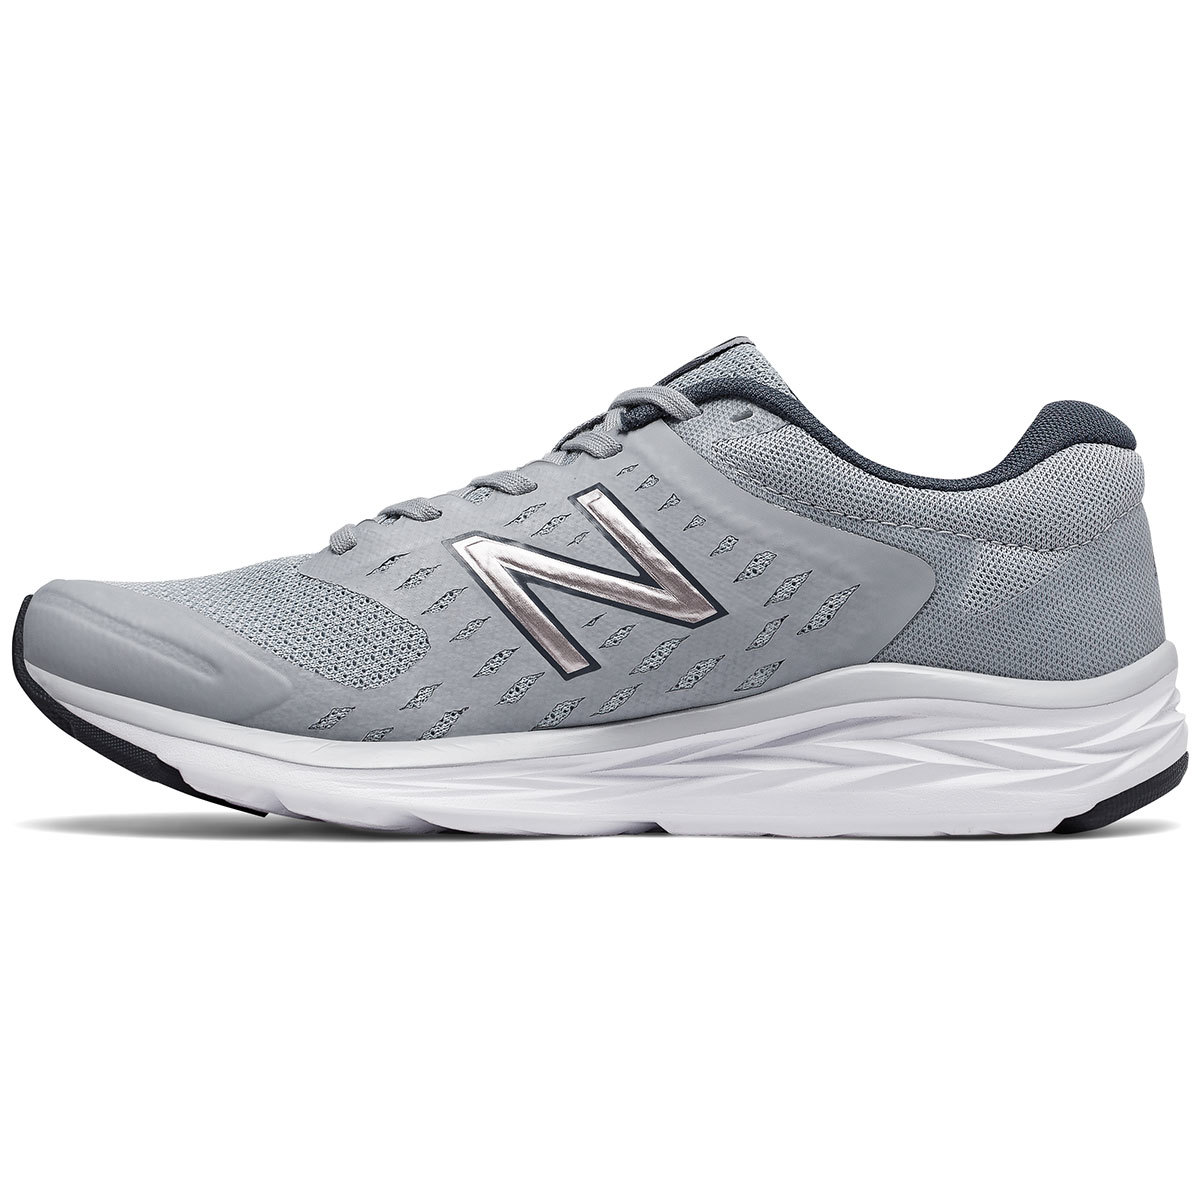 hot sale online 49f30 bb568 NEW BALANCE Women's 490v5 Running Shoes, Silver Mink/Thunder ...